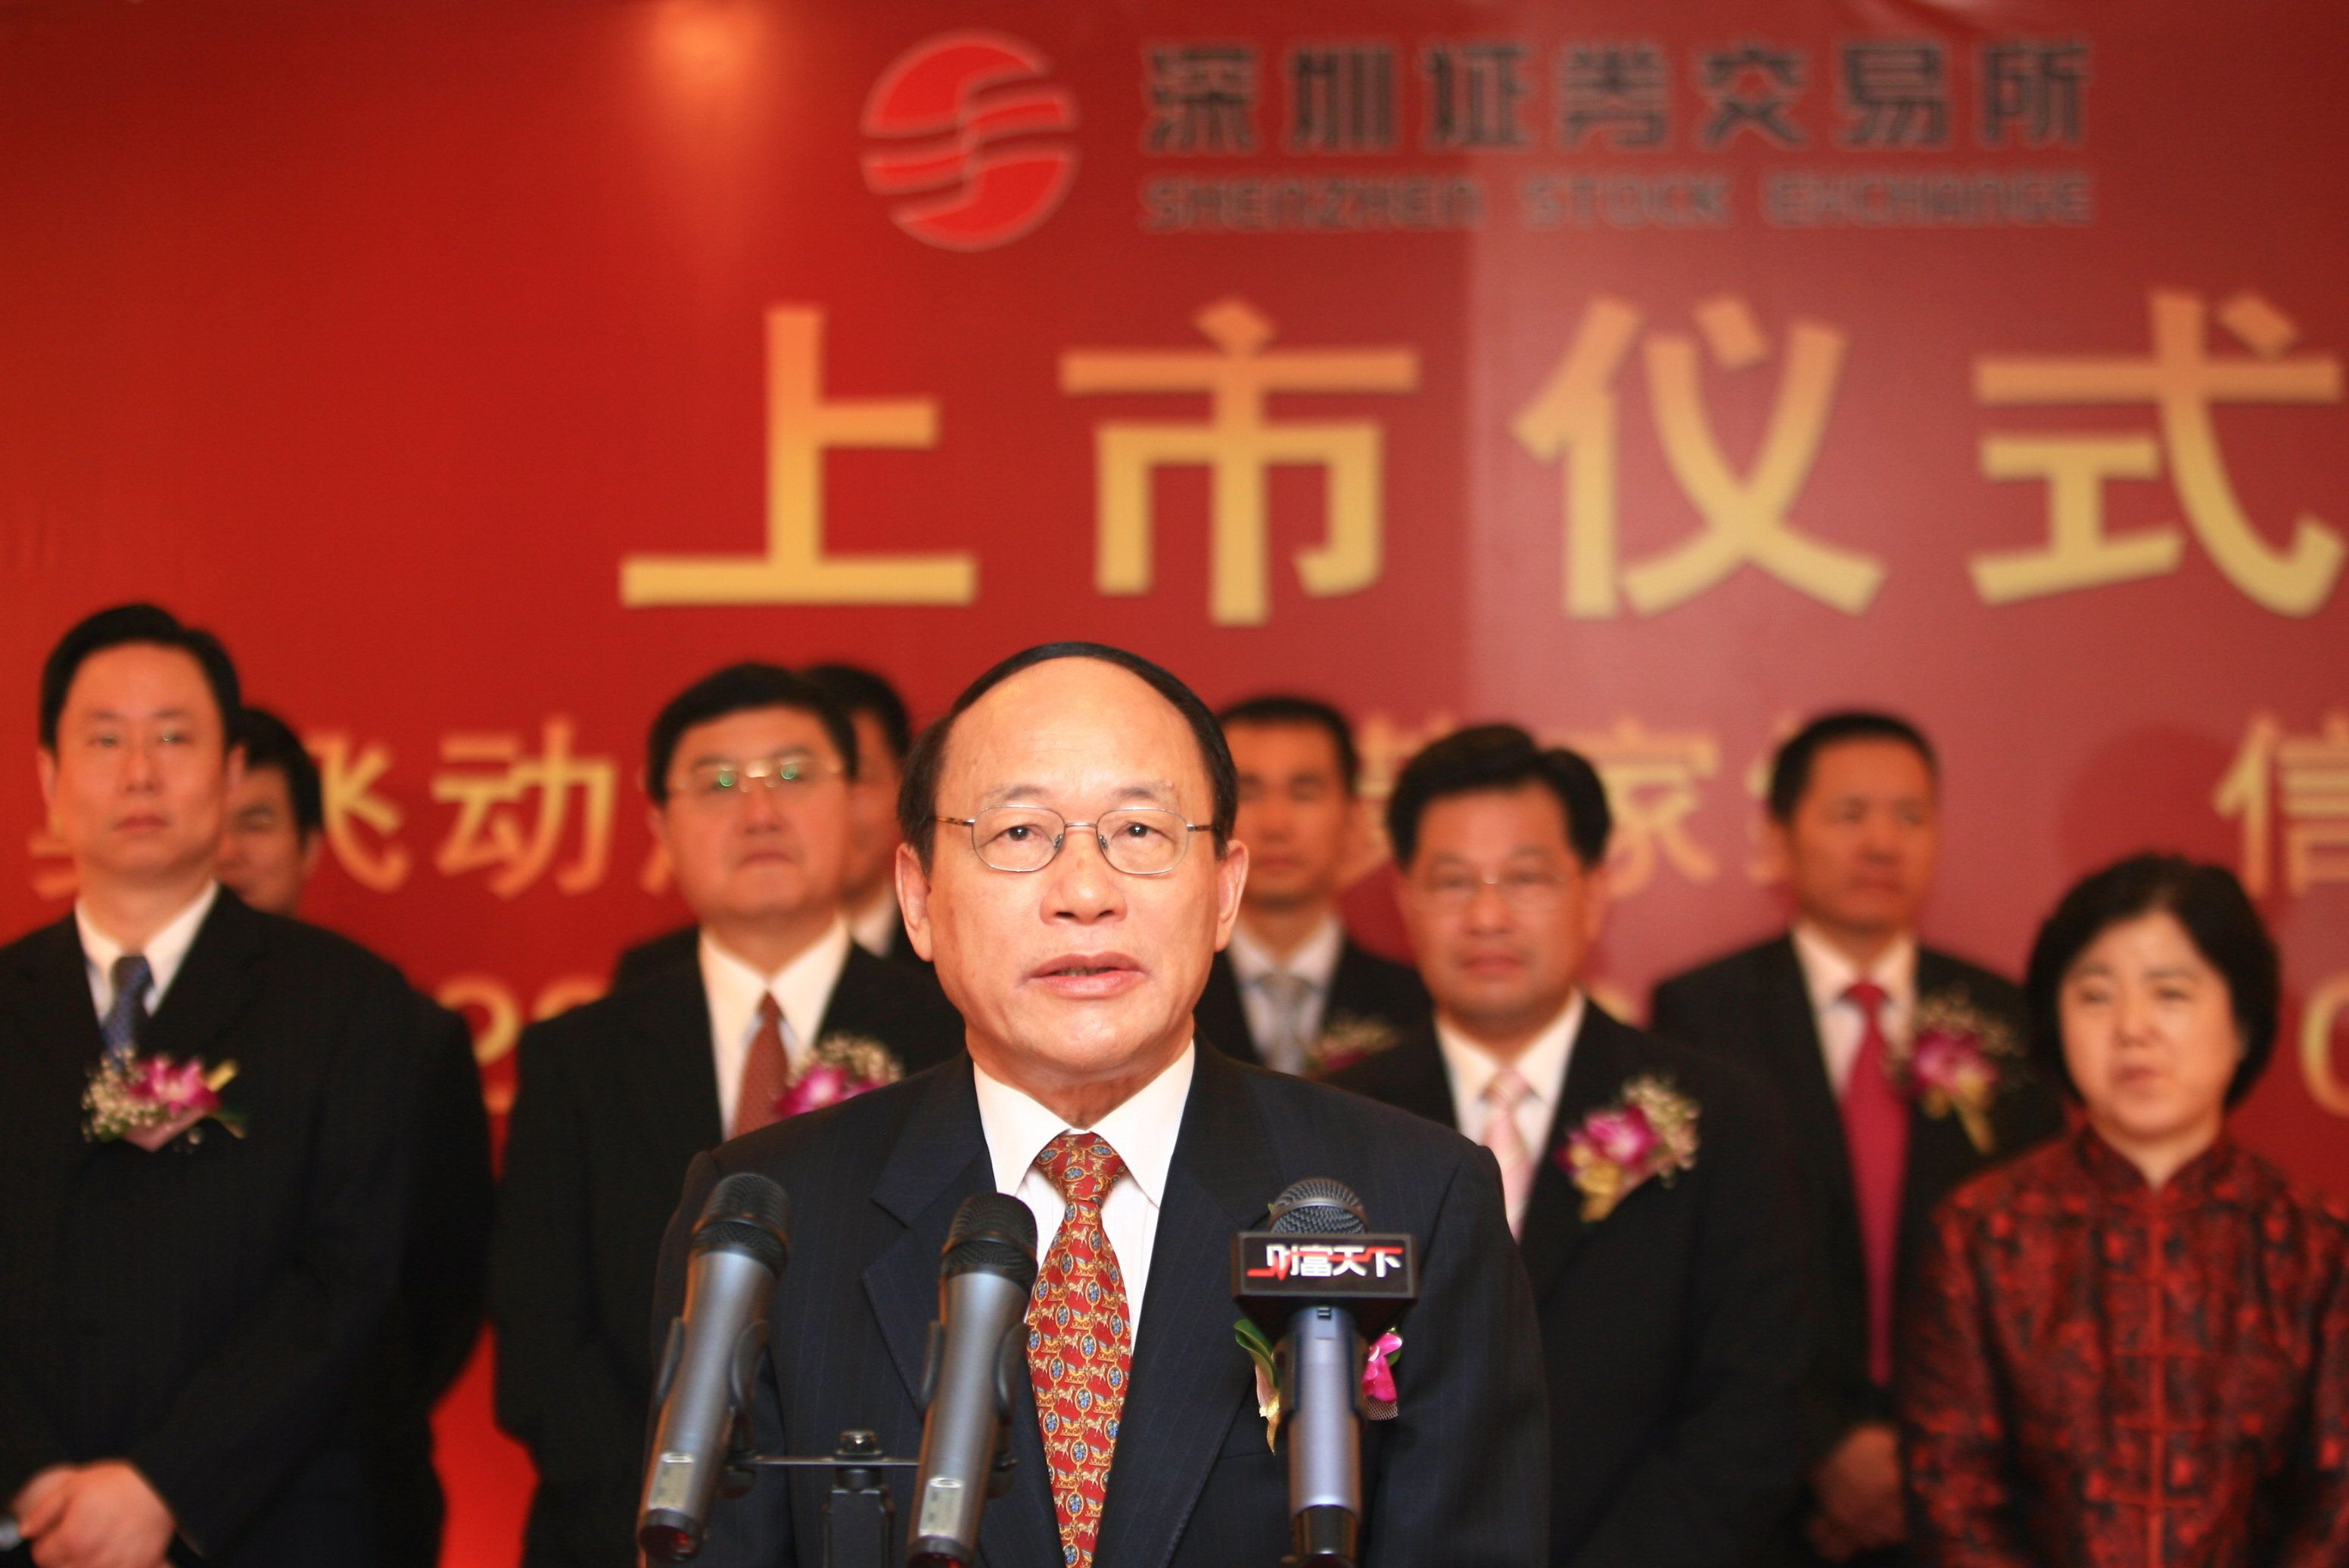 Ye Chenghai, front, chairman of Shenzhen Salubris Pharmaceuticals Co., Ltd., speaks during the ceremony for the listing of Sa